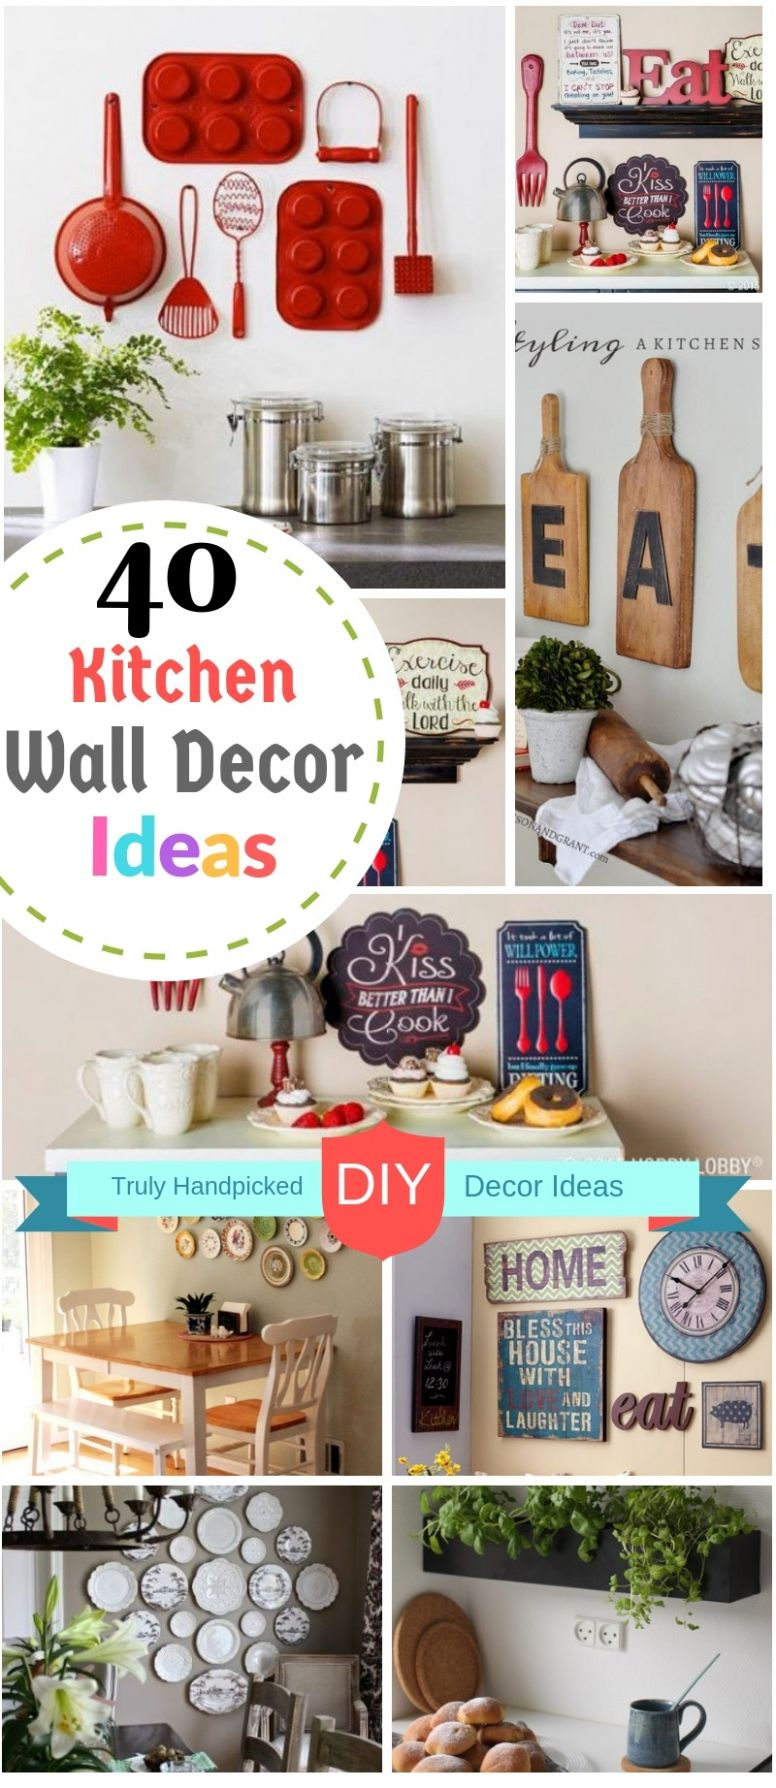 10 DIY Kitchen Wall Decor Ideas: Creative Farmhouse and Modern Decors - kitchen wall decor ideas diy